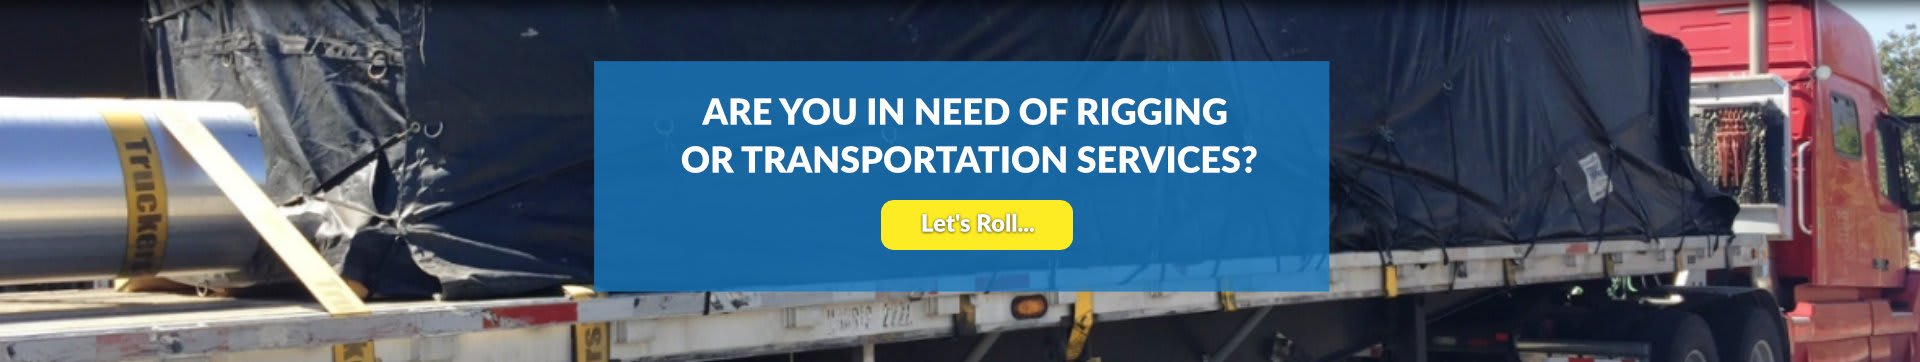 are you in need of rigging or transportation services